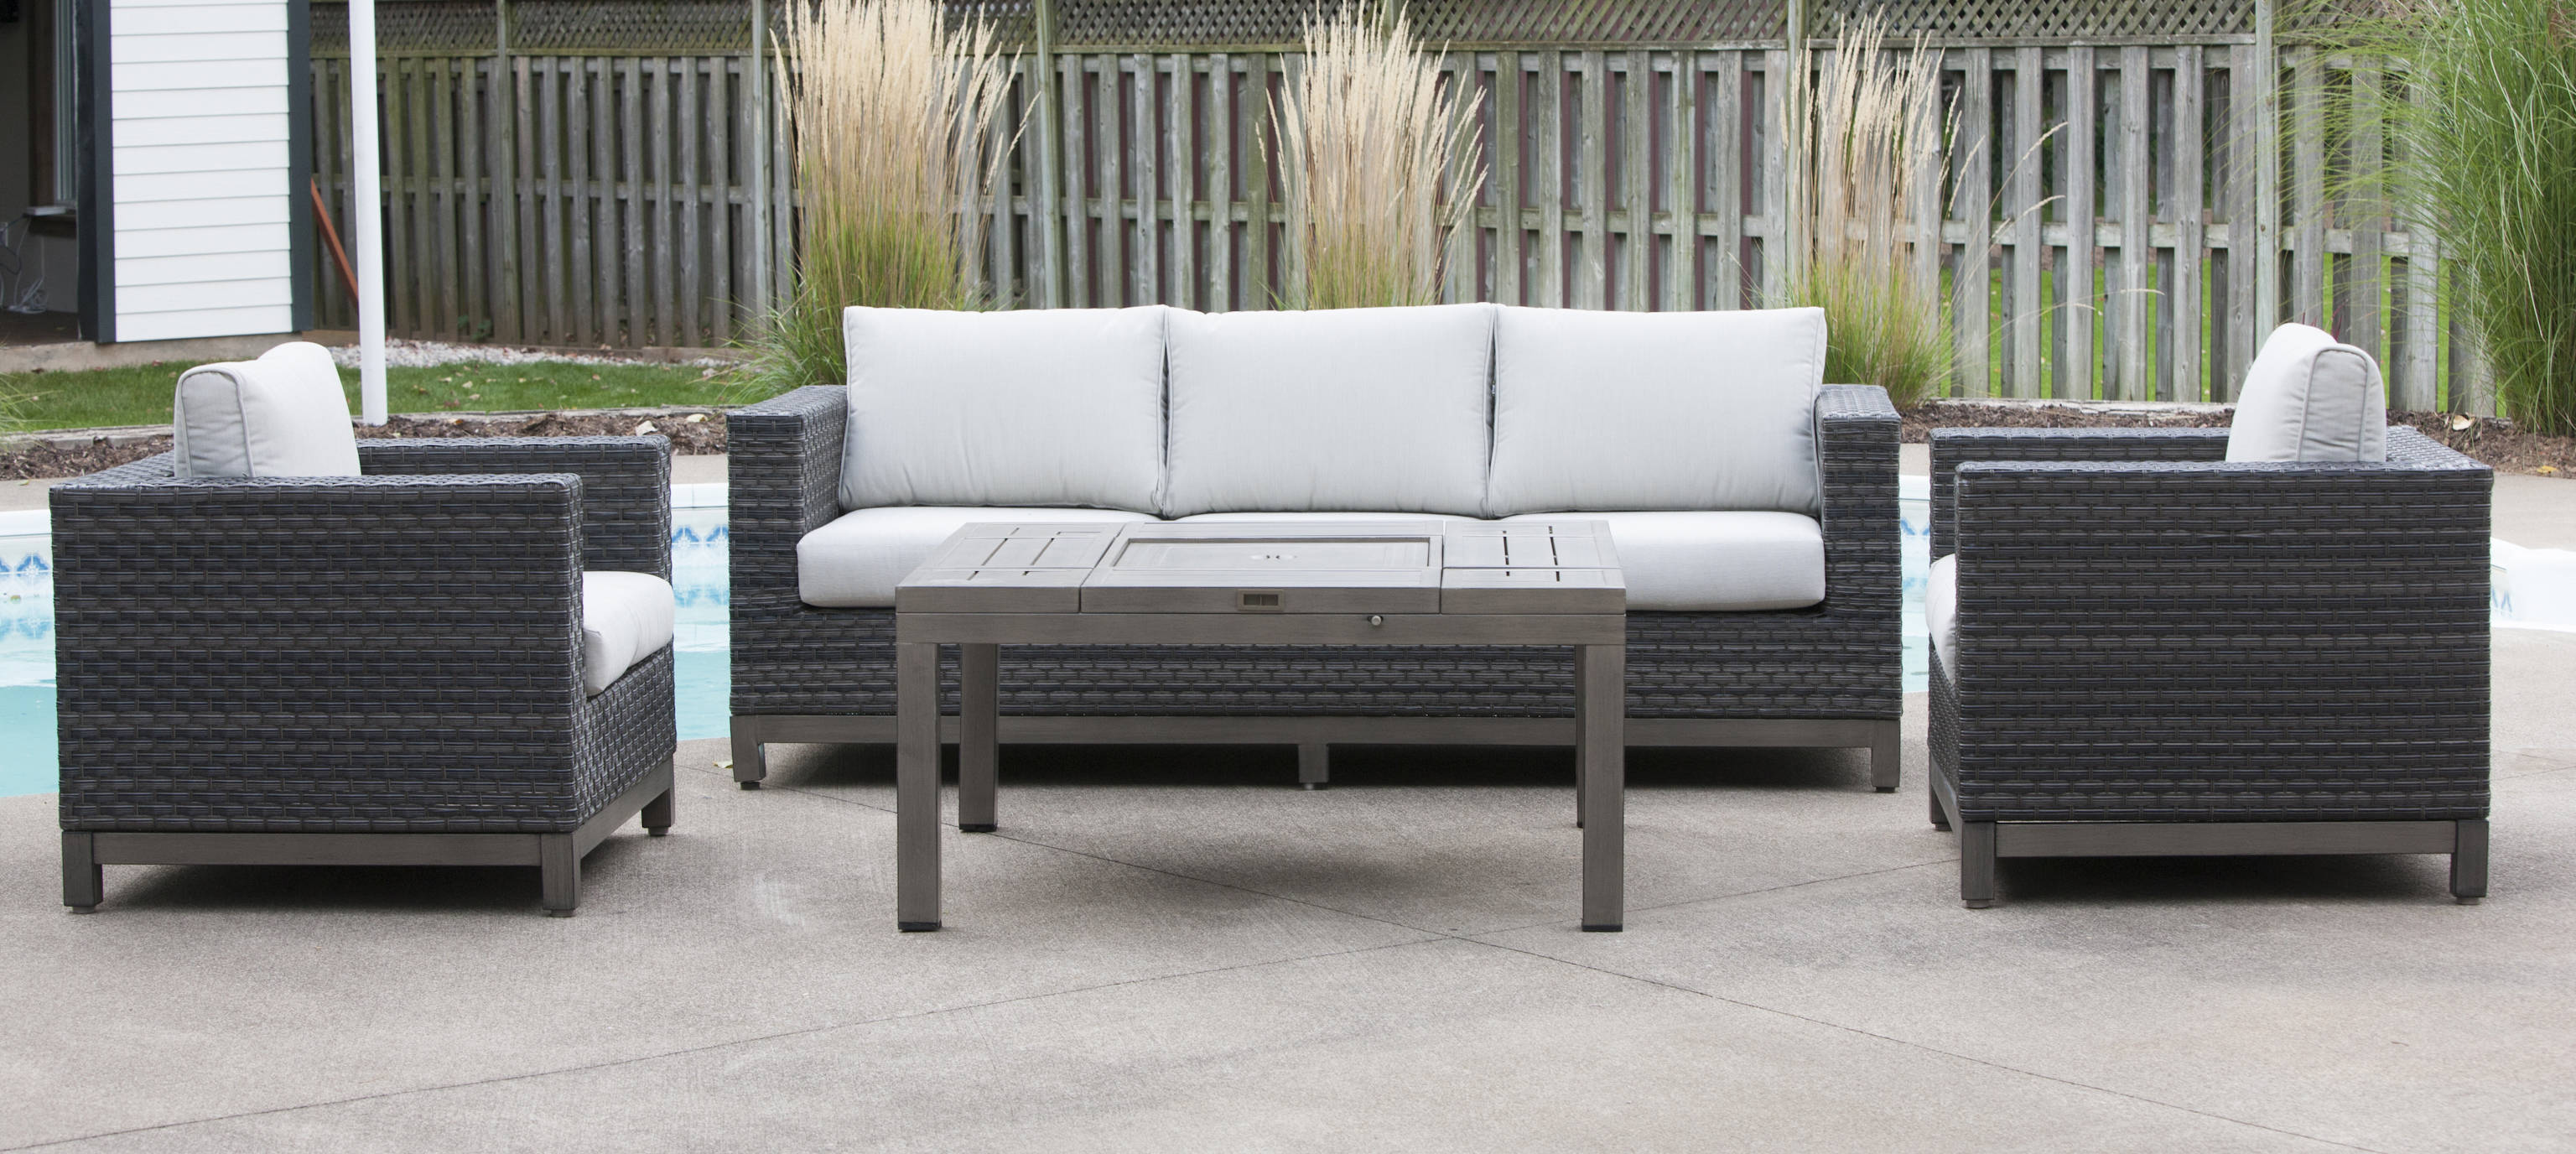 outdoor tierney set furniture sectional patio free wicker today shipping product piece home sofa garden corvus overstock